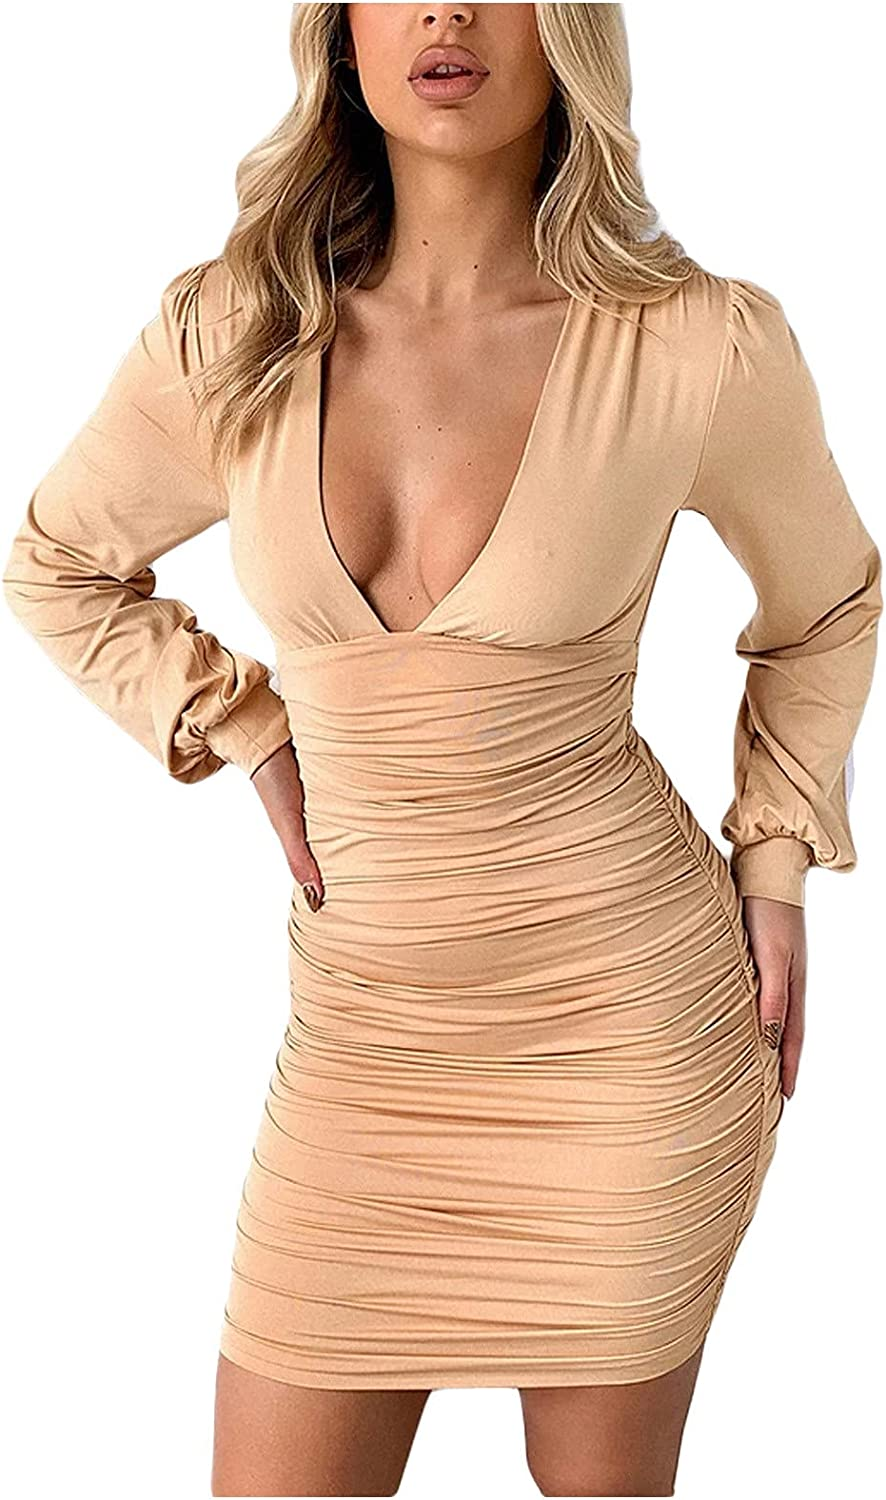 Womens Sexy V Neck Club Dresses Ruched Bodycon High Waisted Mini Dress Fall Long Sleeve Club Night Out Party Dress